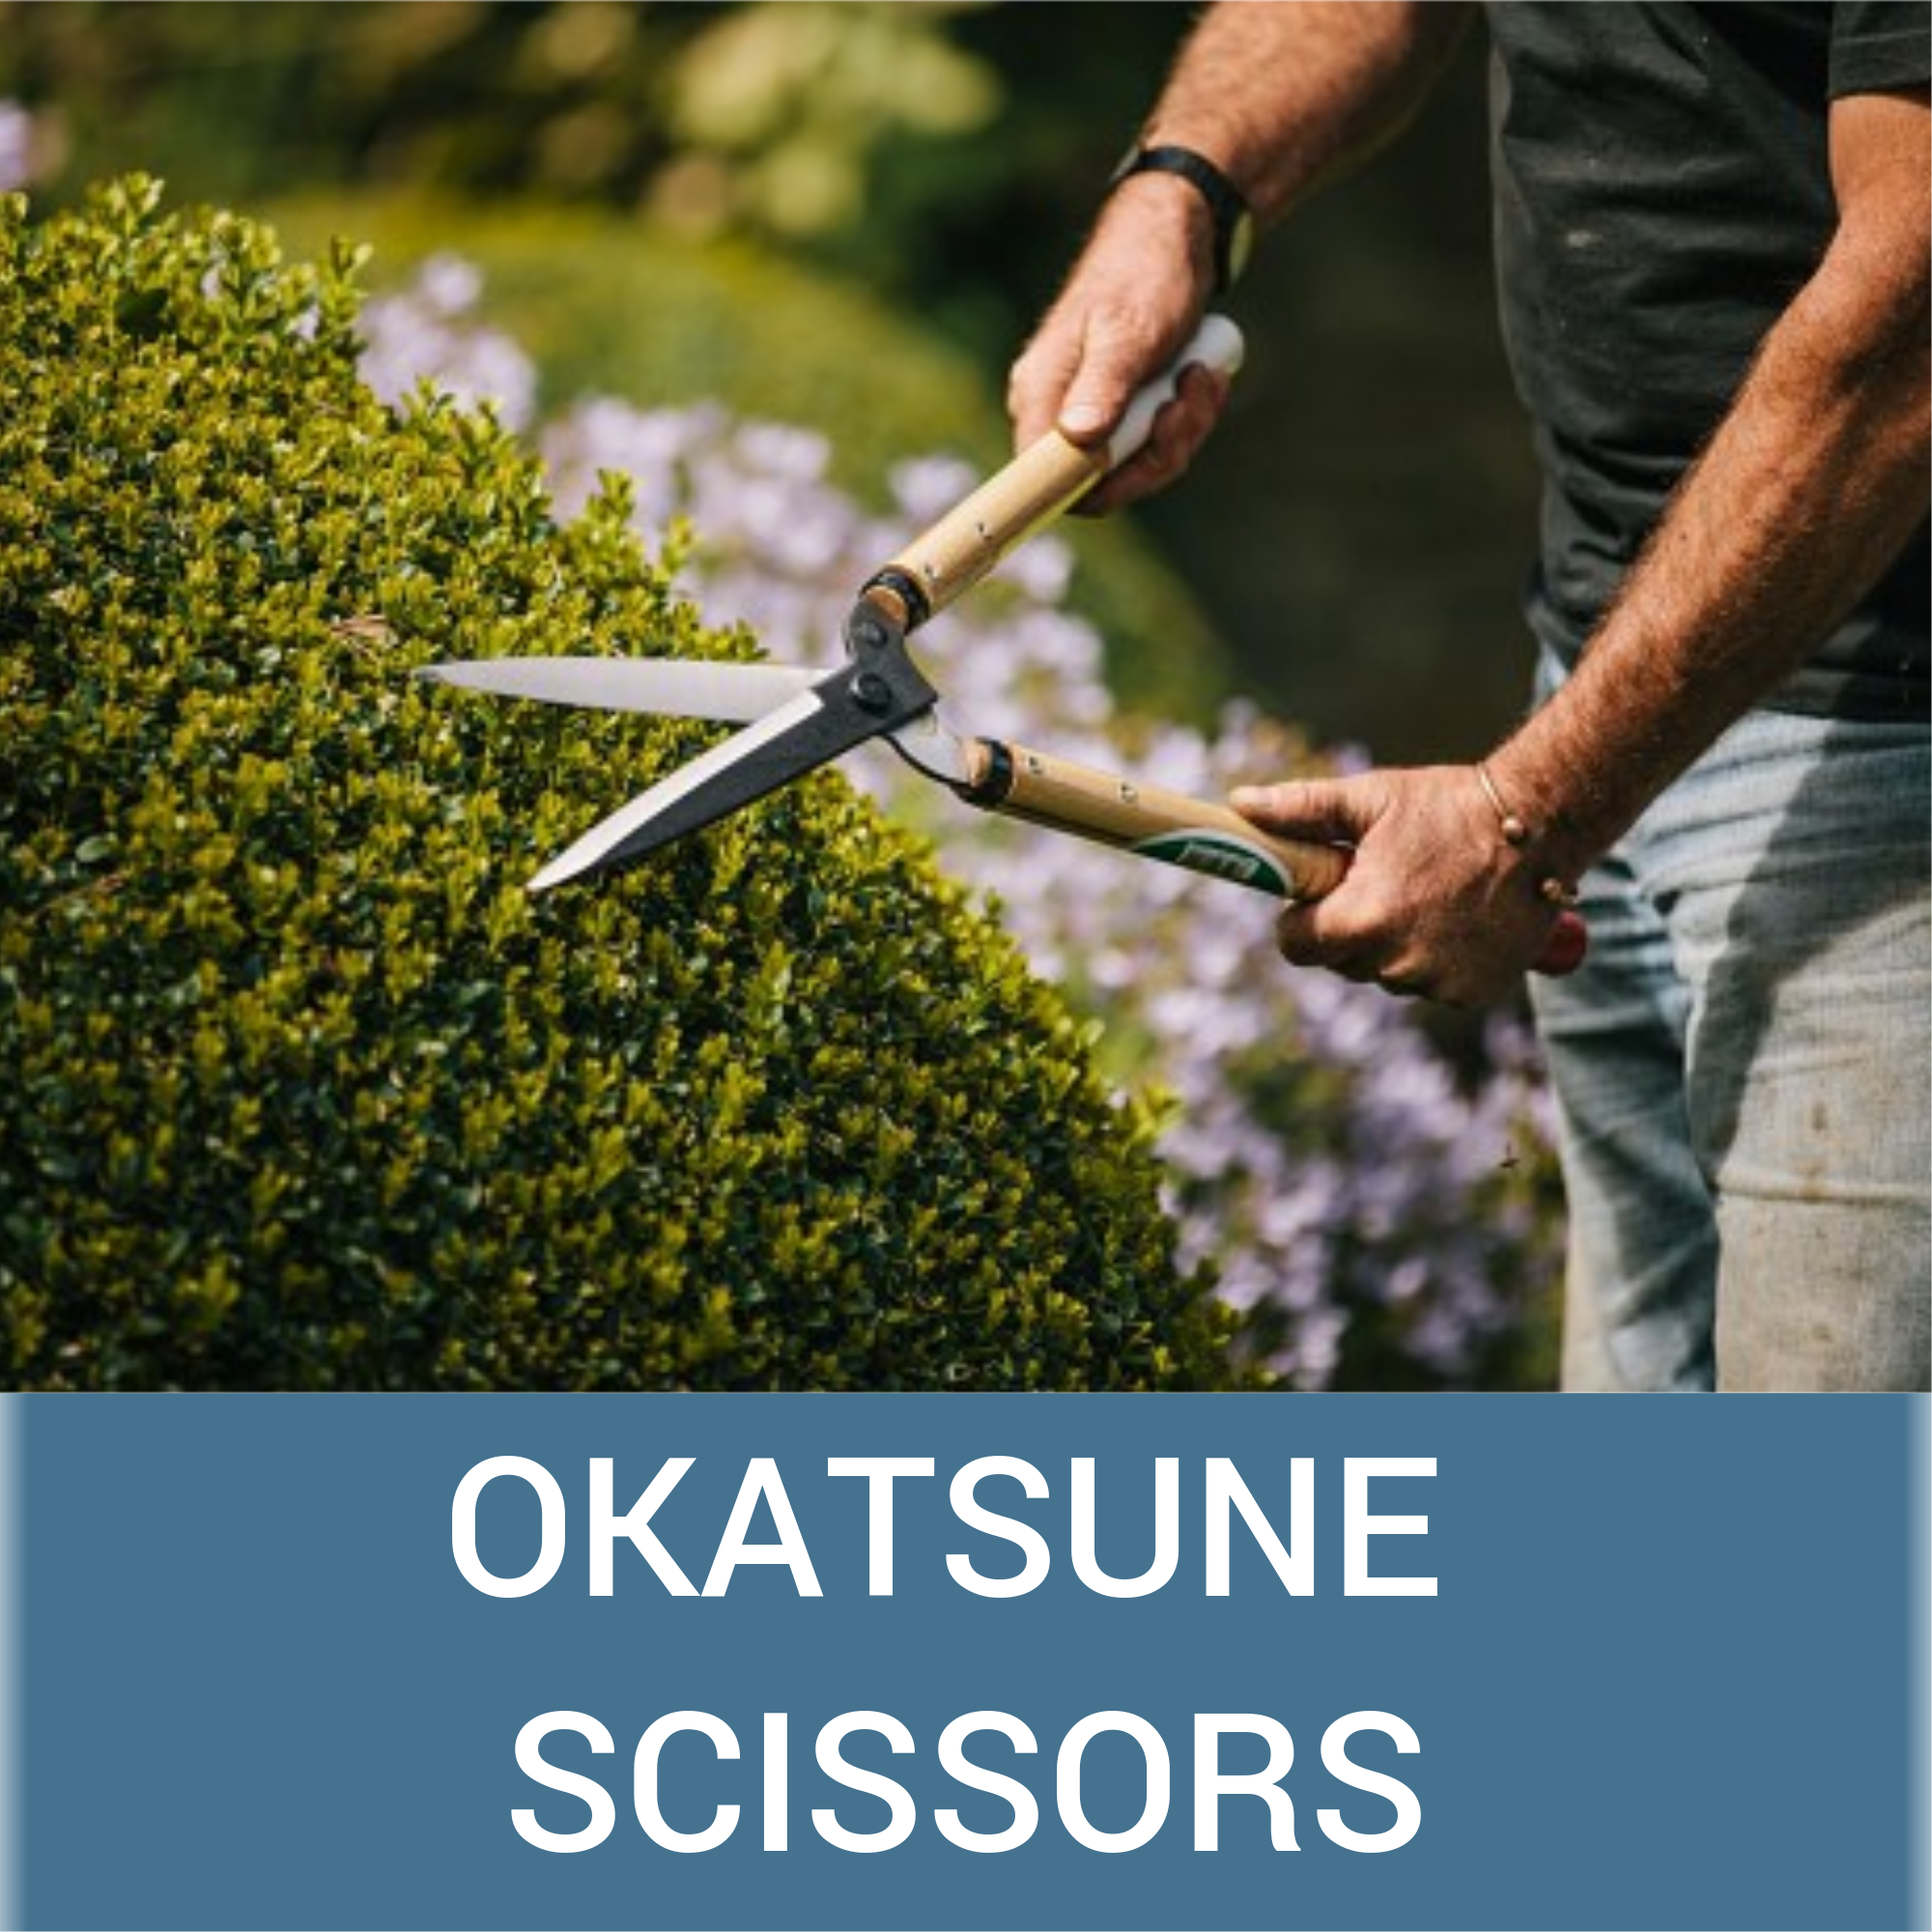 Okatsune Scissors